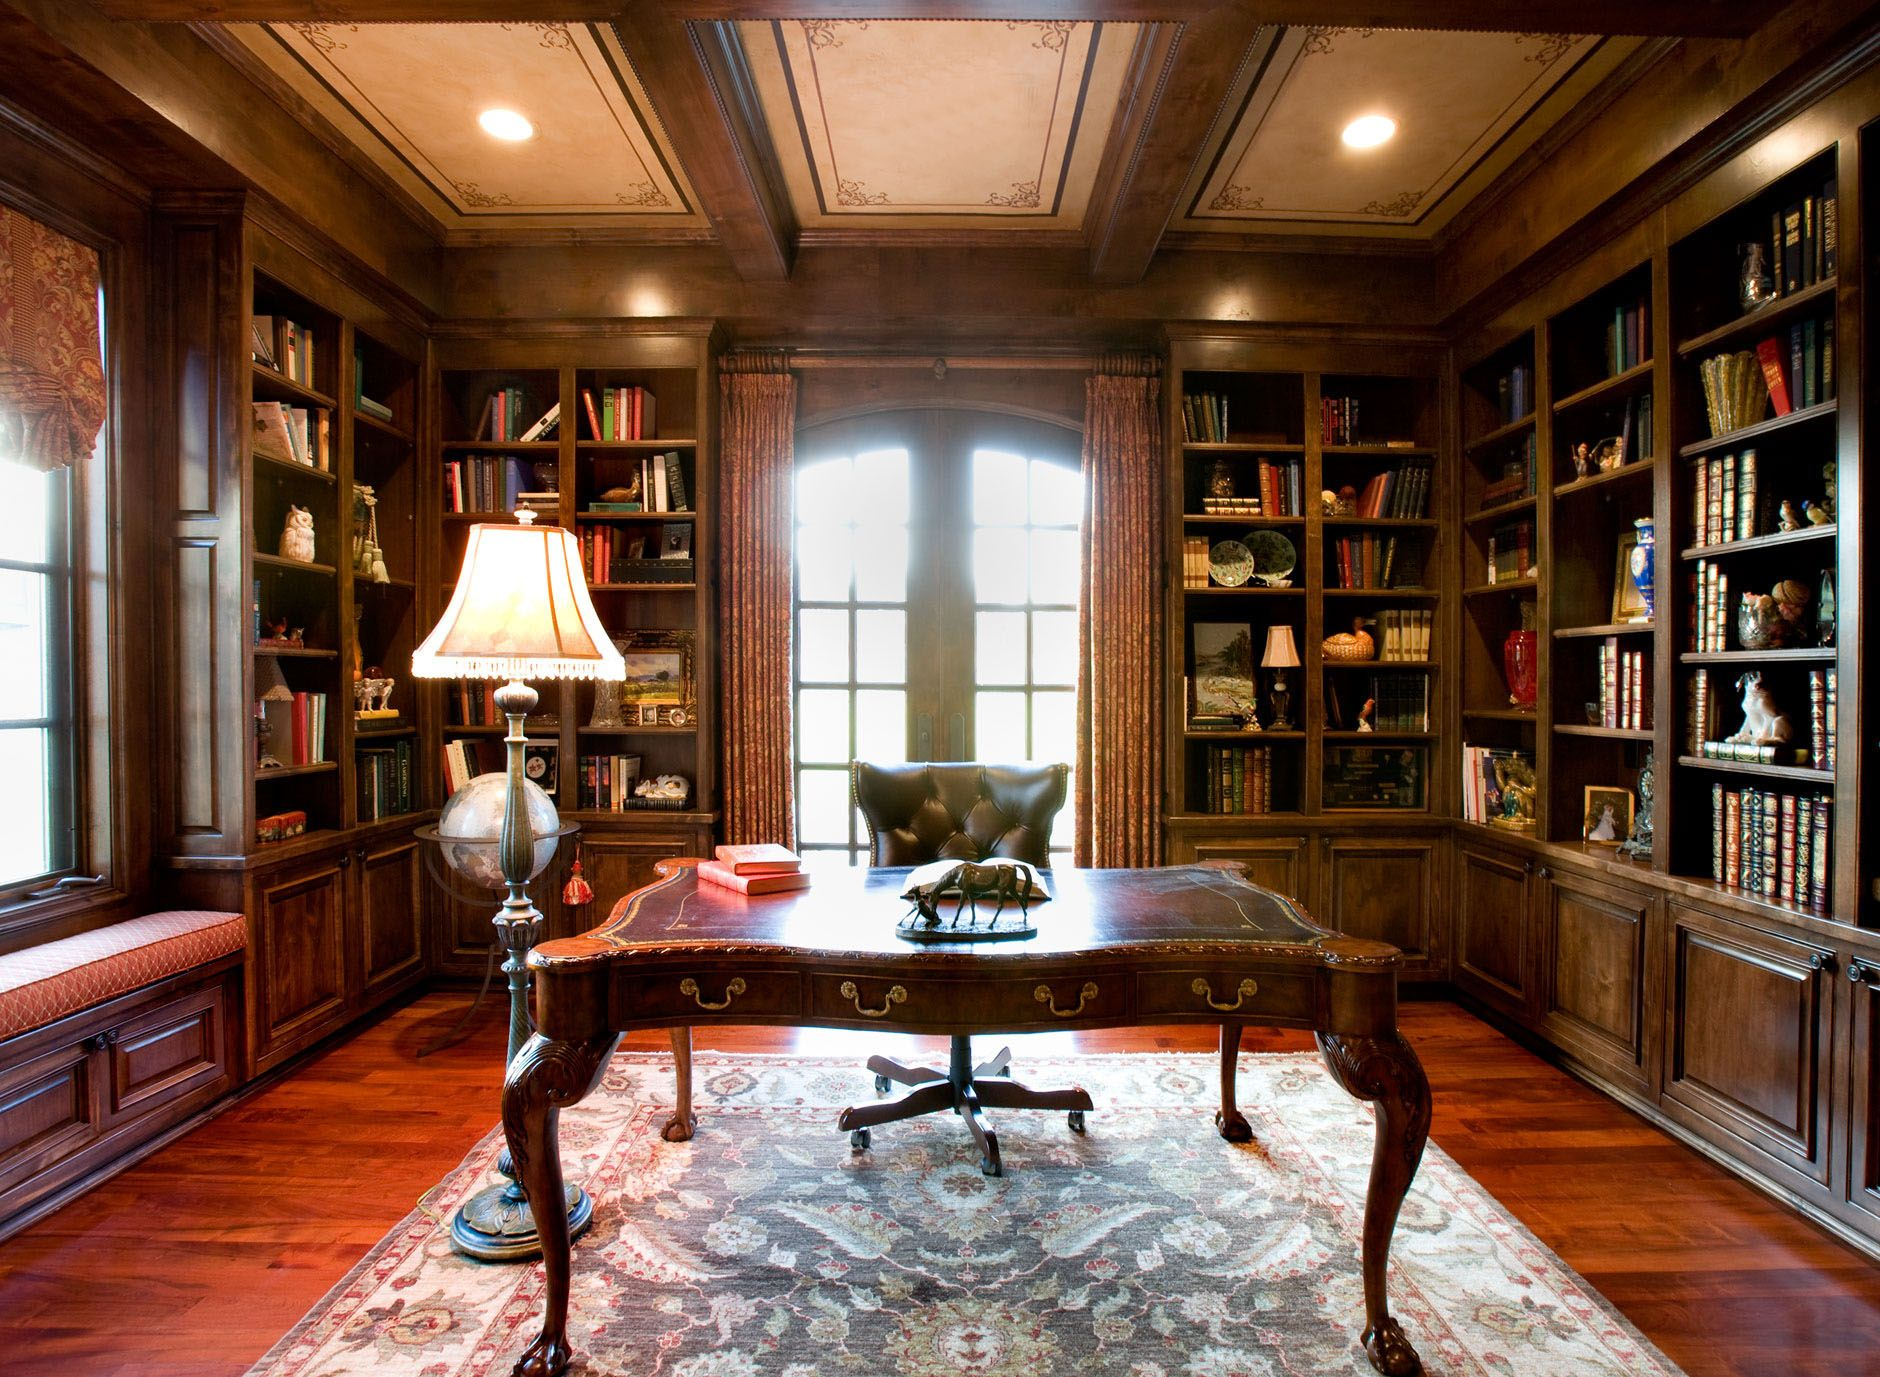 Elegant Home Library Interior Design | 30 Classic Home Library ...